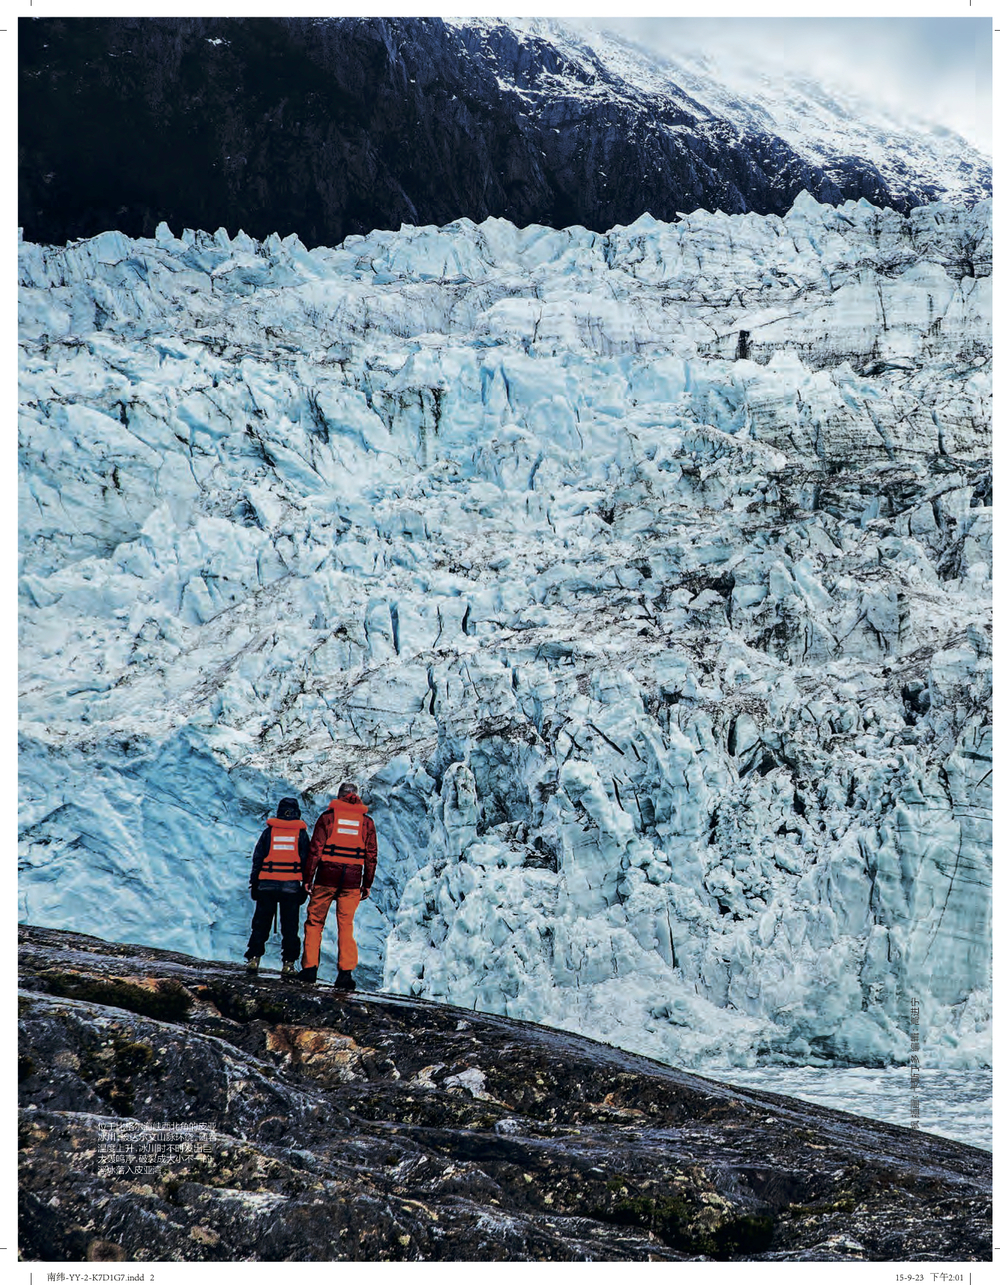 TO TH  E END OF THE WORLD Pt. 2      Conde Nast Traveler China   Part 2 of my epic journey with photographer Julien Capmeil took us on a ship traveling from the Tierra del Fuego area of Patagonia, through a world of glaciers, and to the southernmost tip of the world before Antarctica, Cape Horn.